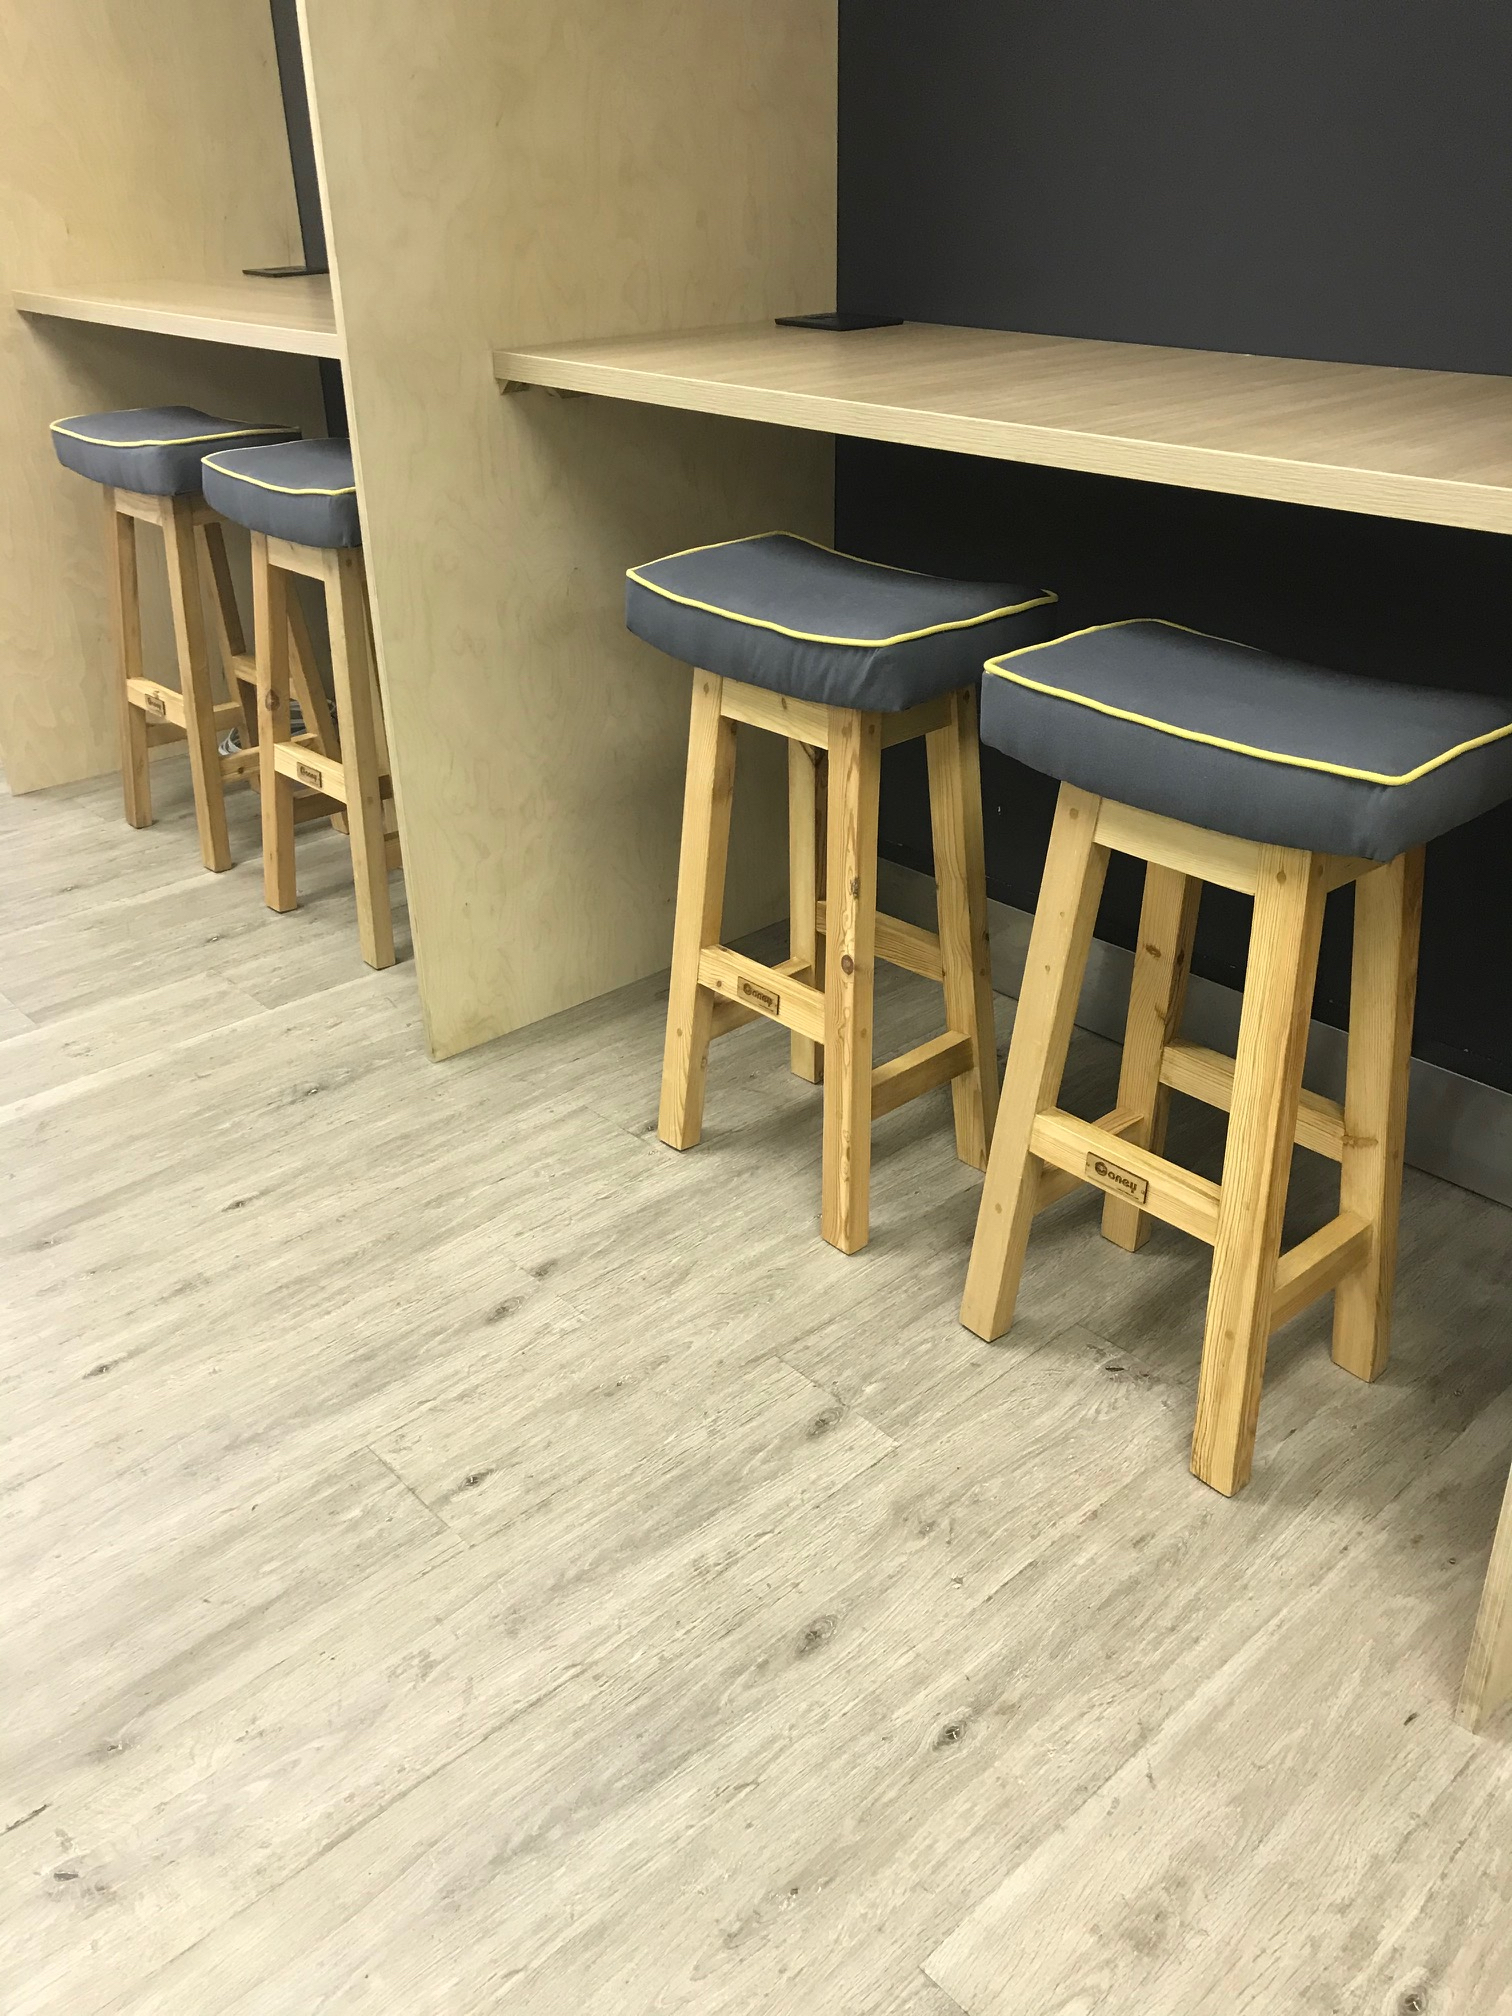 Office hot desks with stools